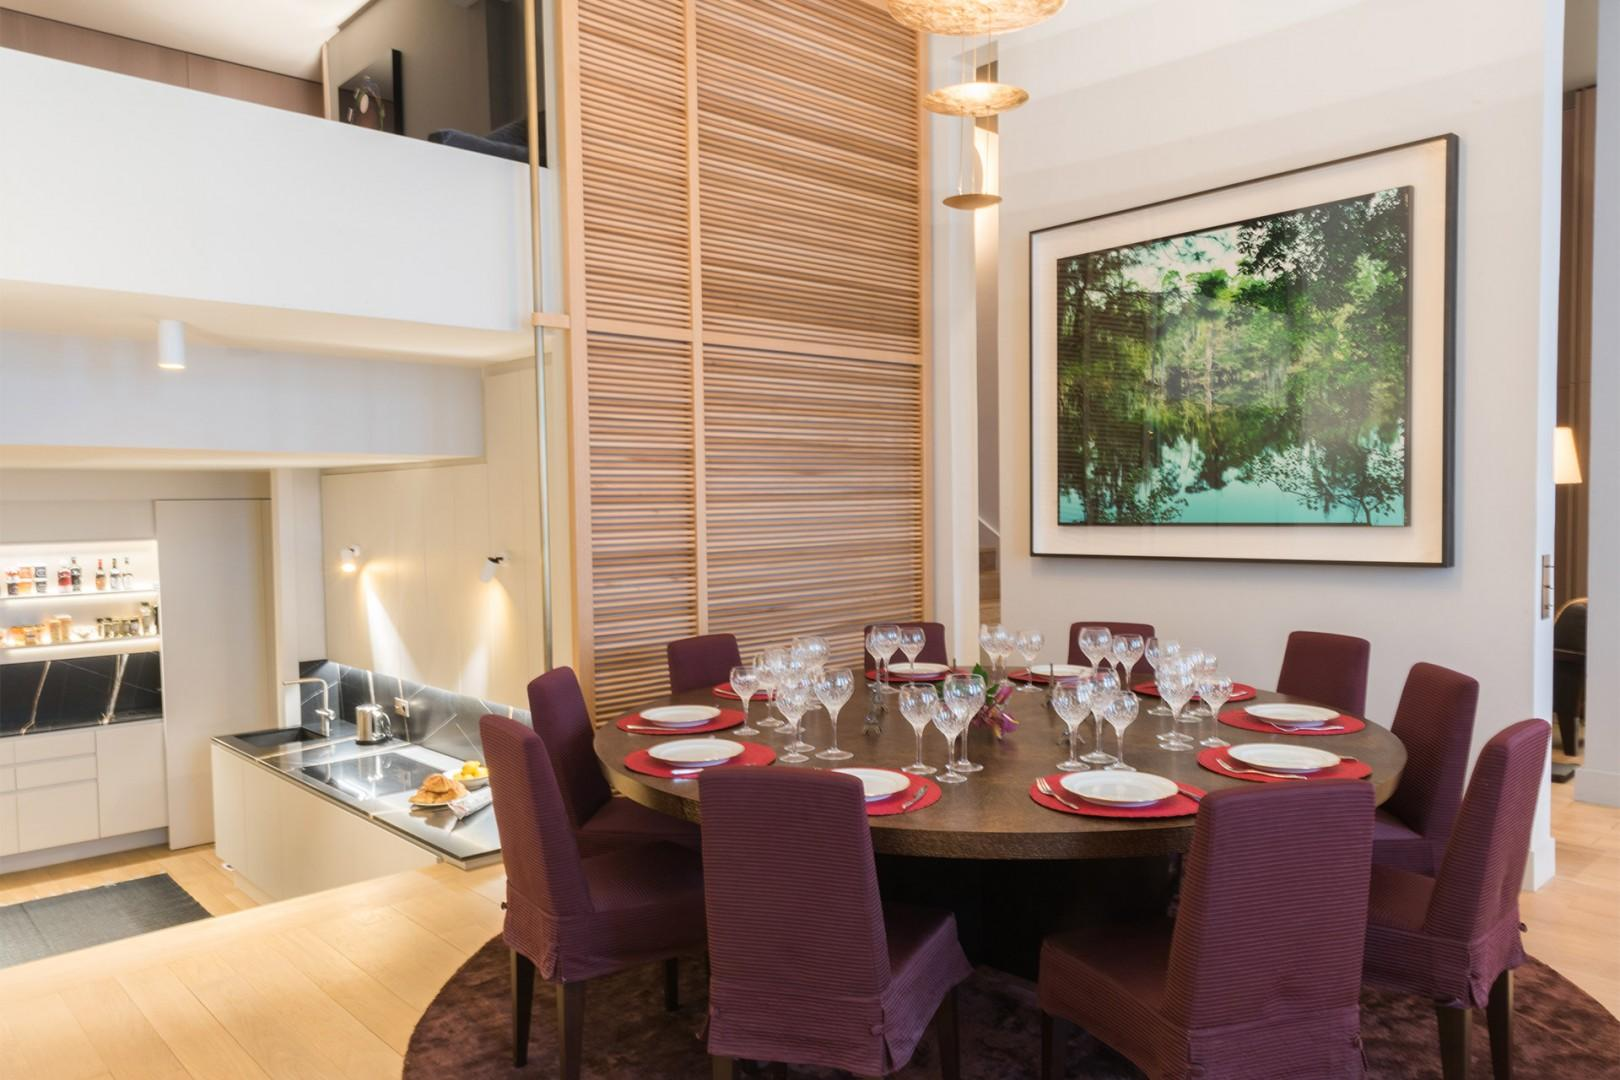 The centerpiece of the room is a grand dining table that seats up to 10 people.